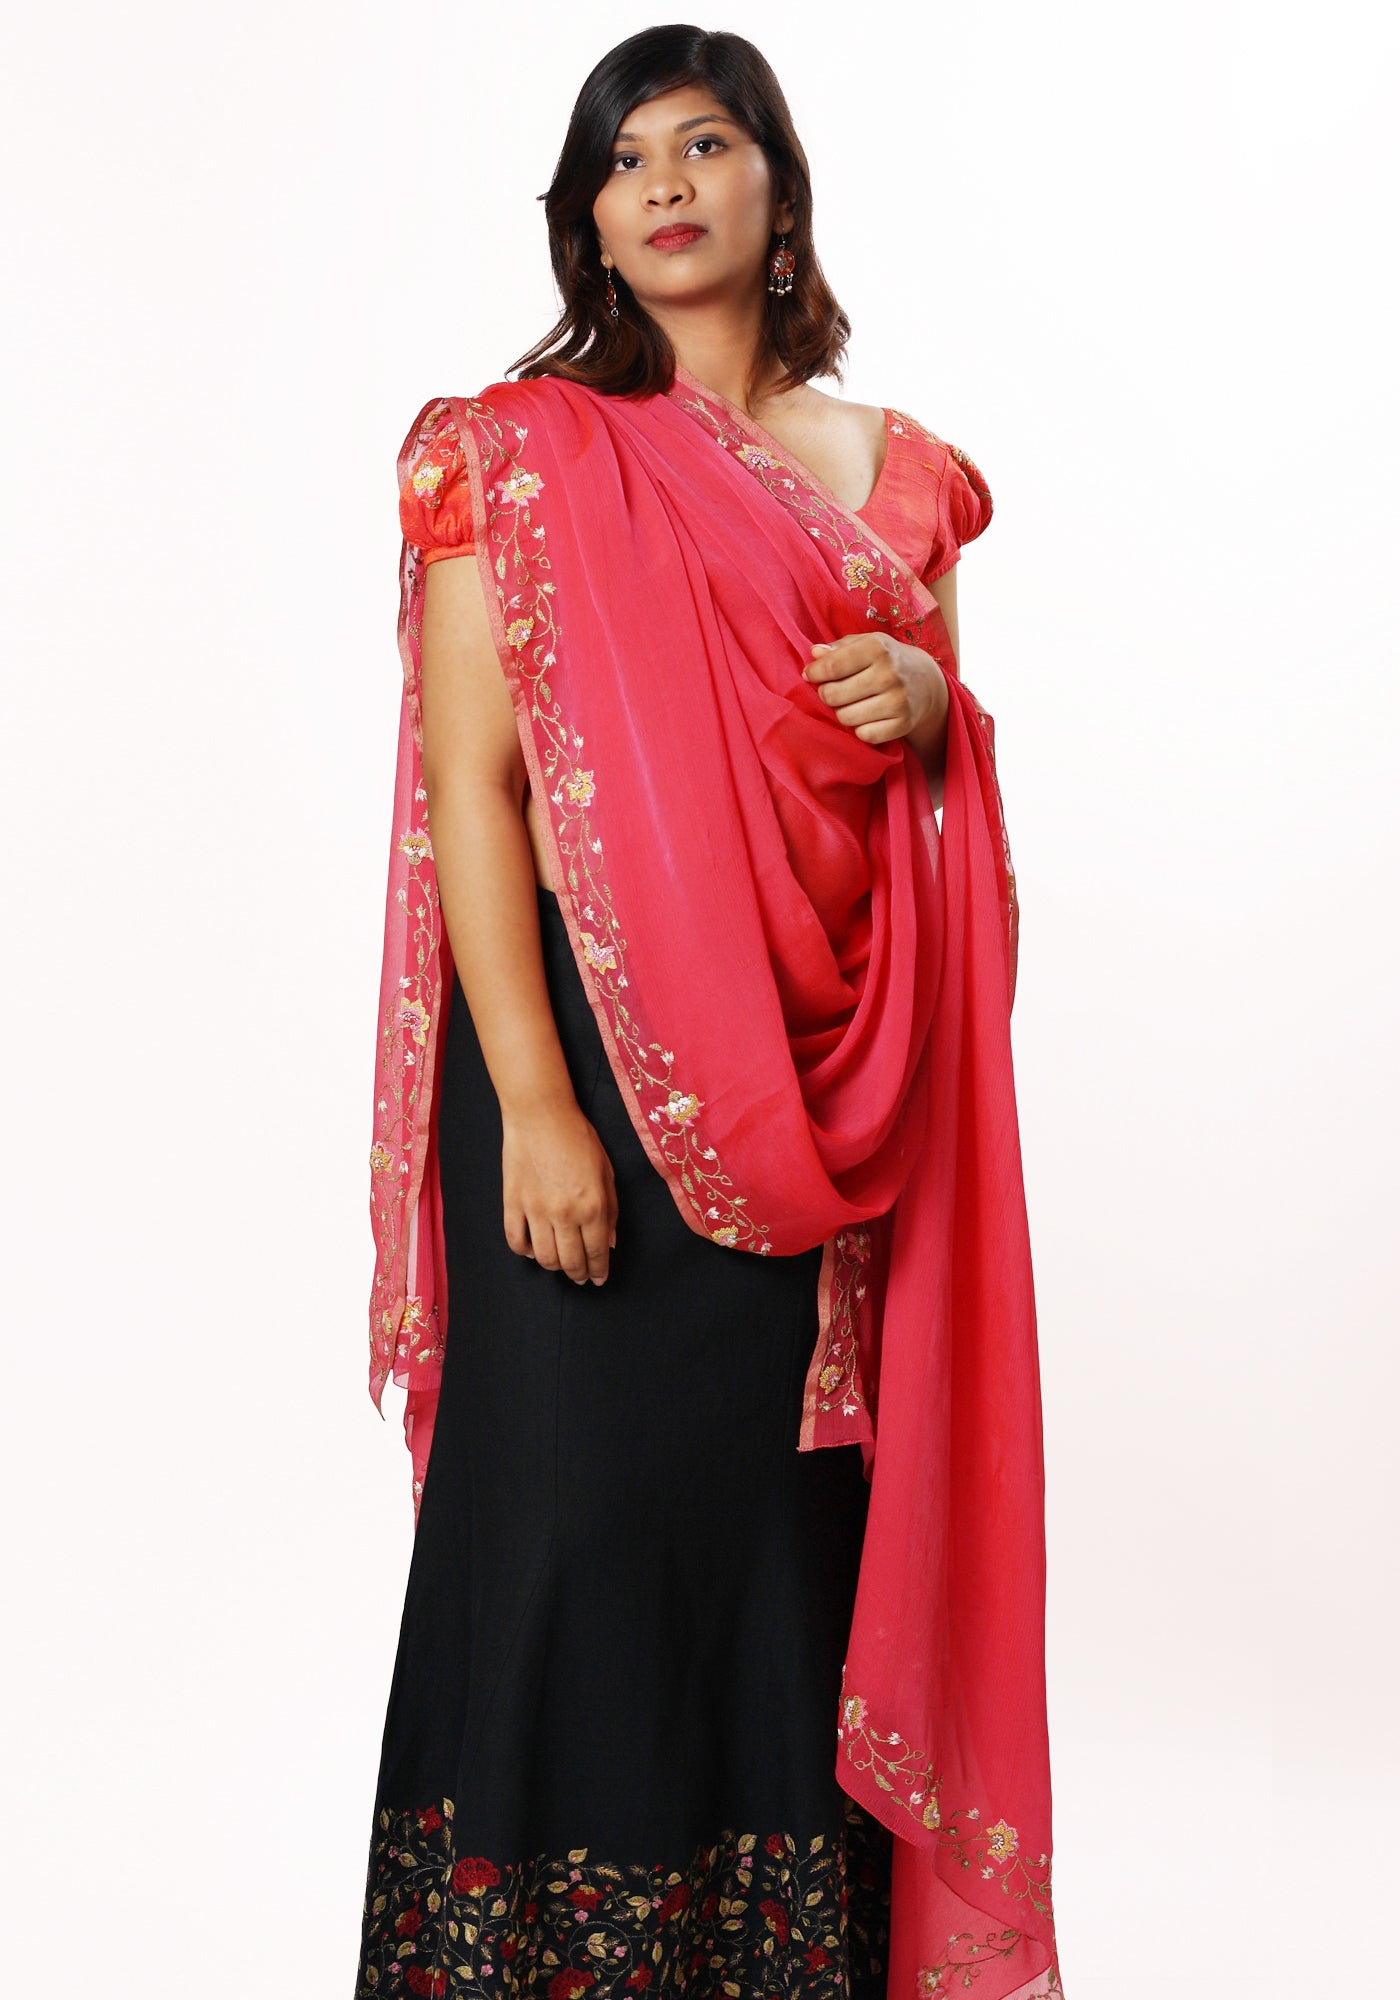 Hand Embroidered Stole in Pink Silk Georgette - MINC ecofashion